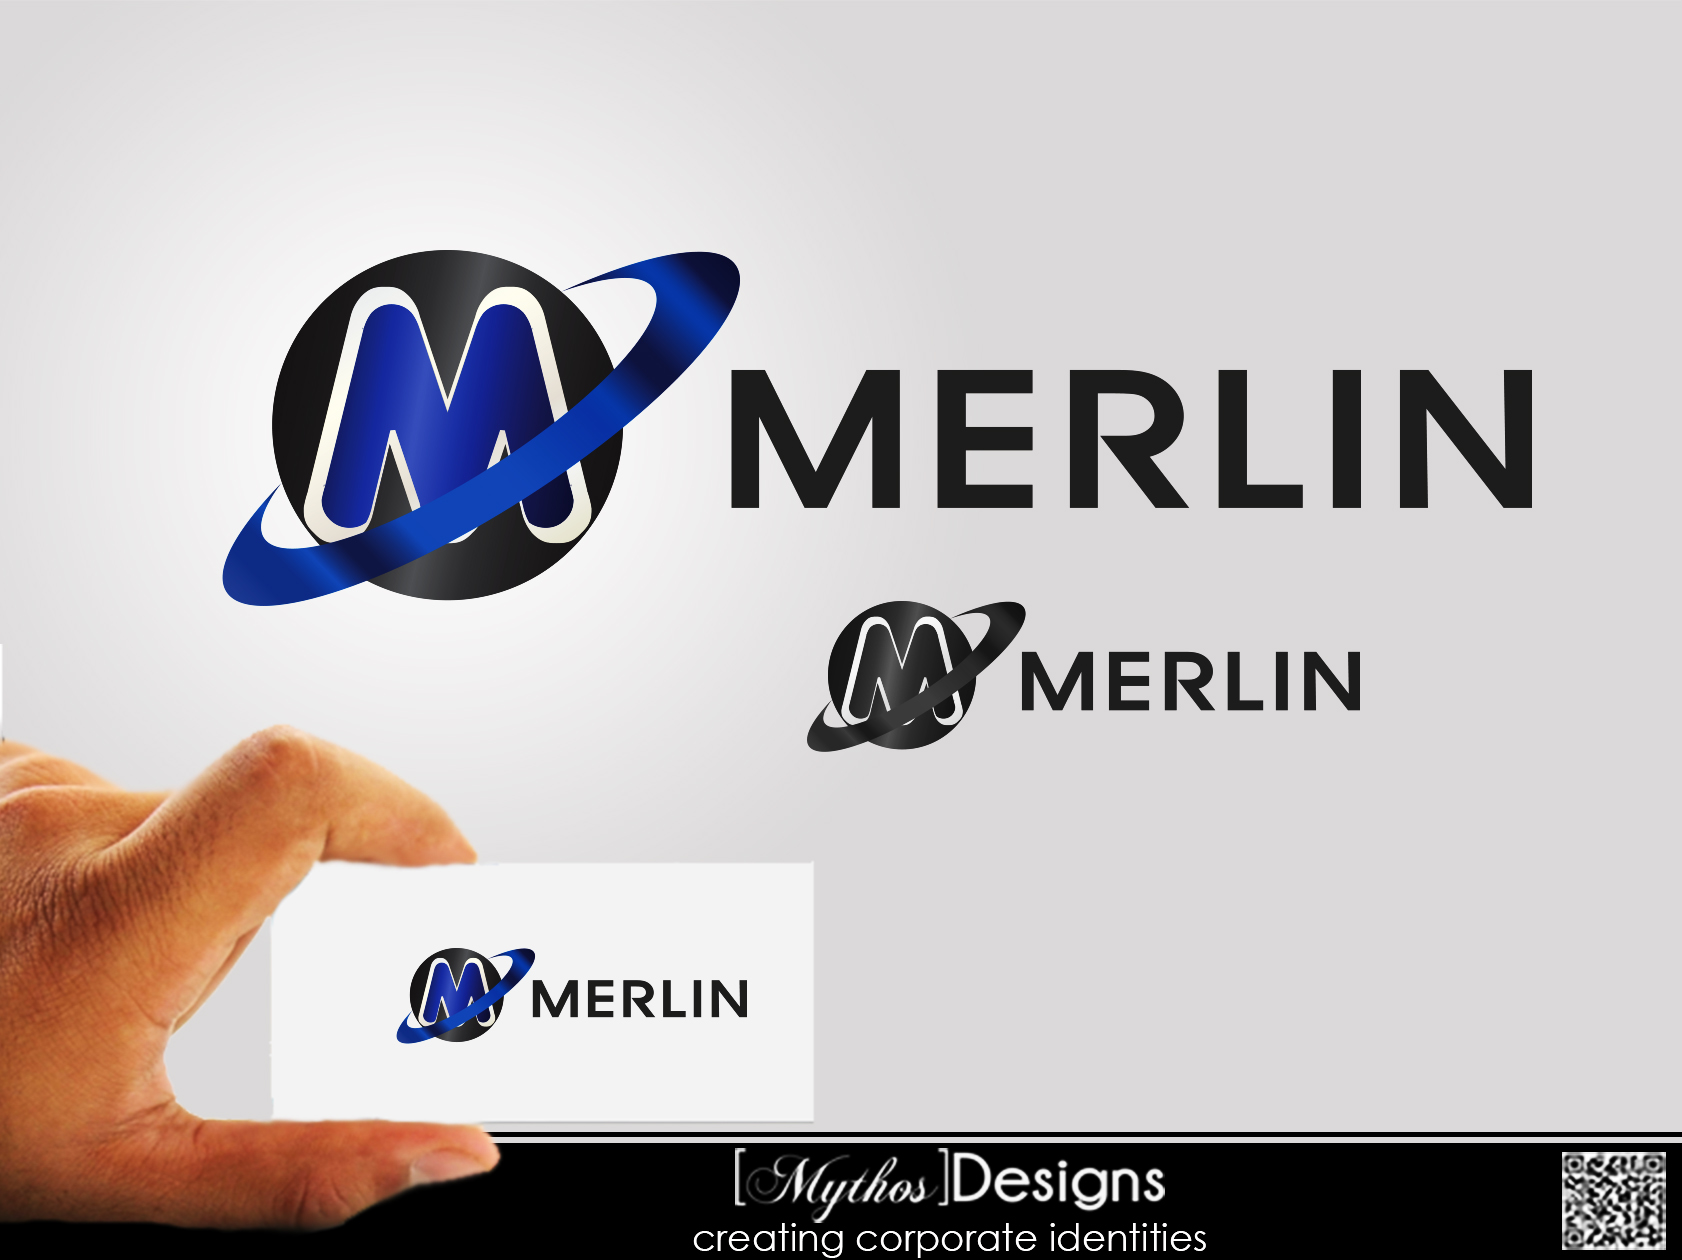 Logo Design by Mythos Designs - Entry No. 89 in the Logo Design Contest Imaginative Logo Design for Merlin.